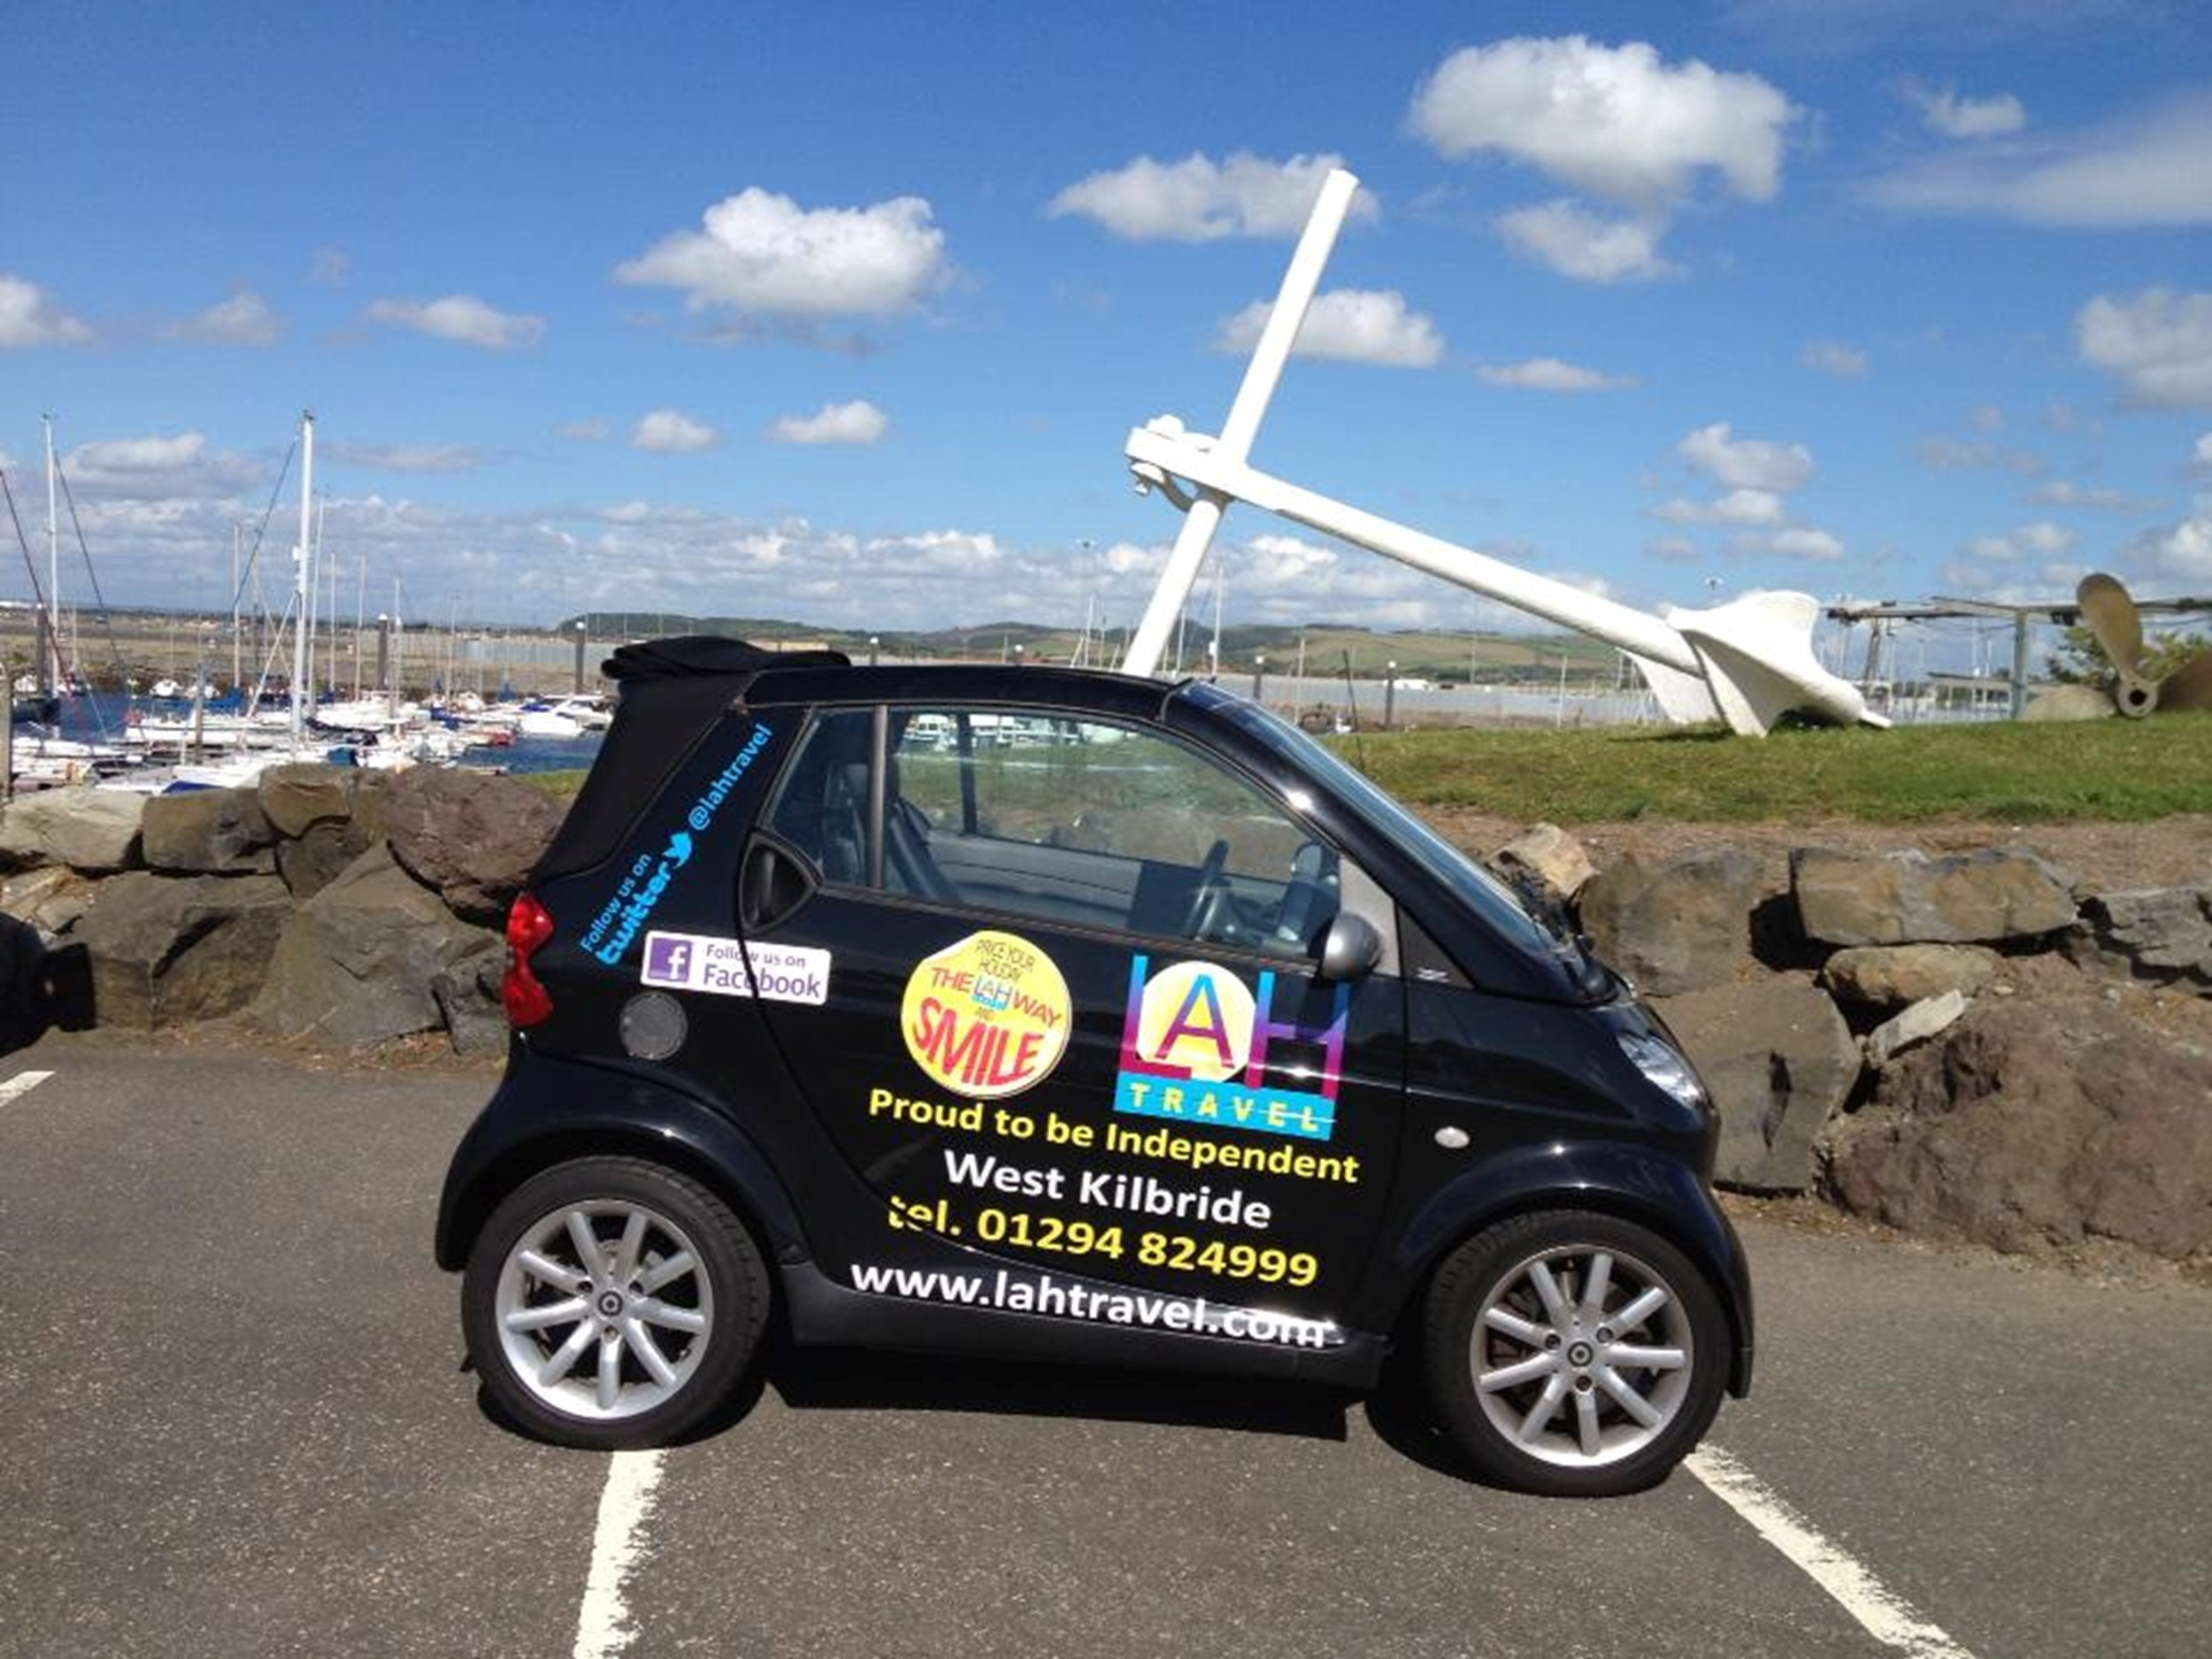 Have you seen Sally Smart Car?